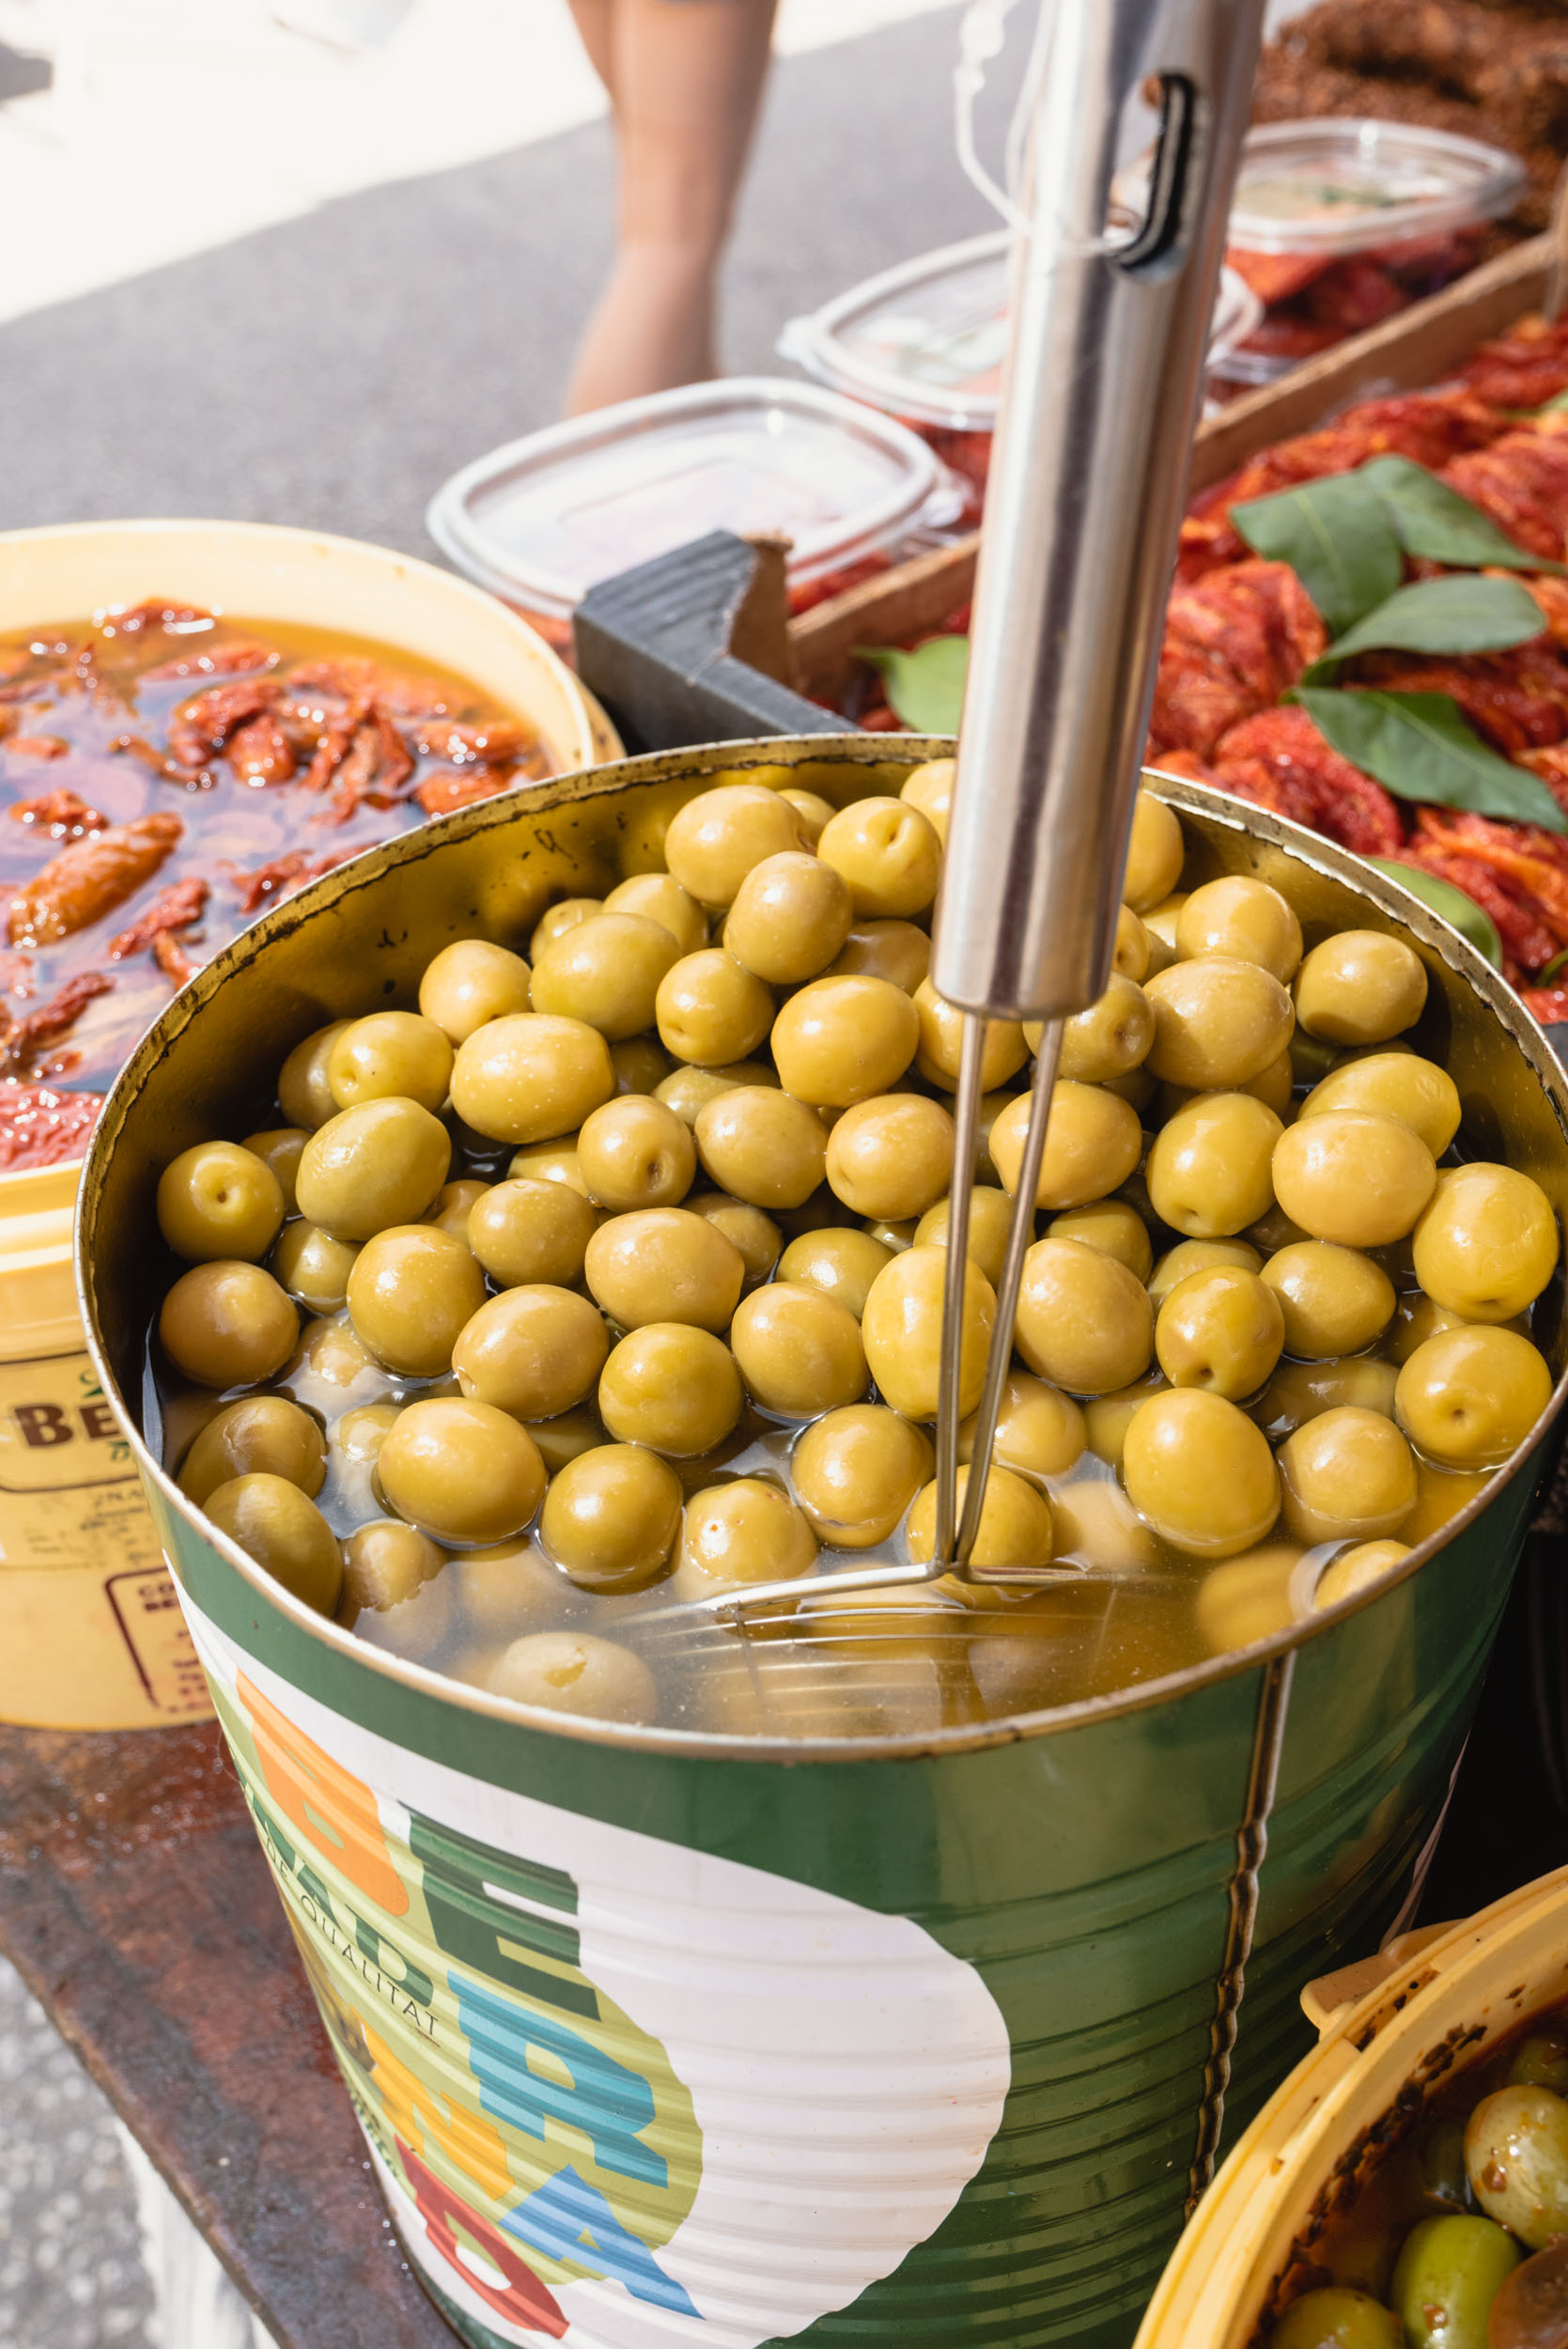 Olives for sale in Sineu market